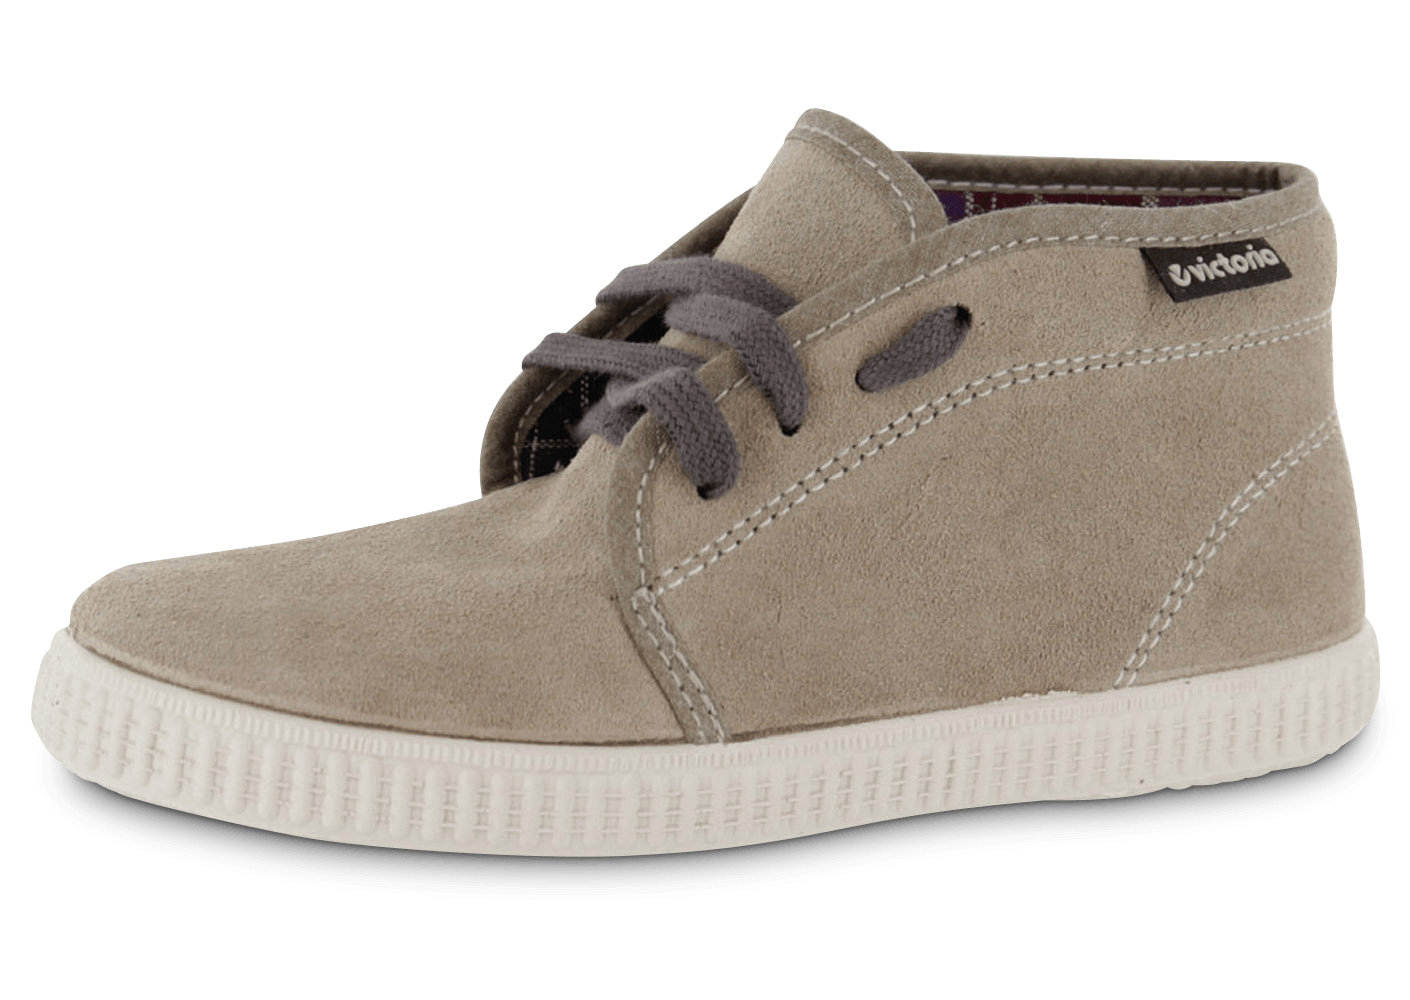 victoria chukka enfant taupe chaussures chaussures. Black Bedroom Furniture Sets. Home Design Ideas